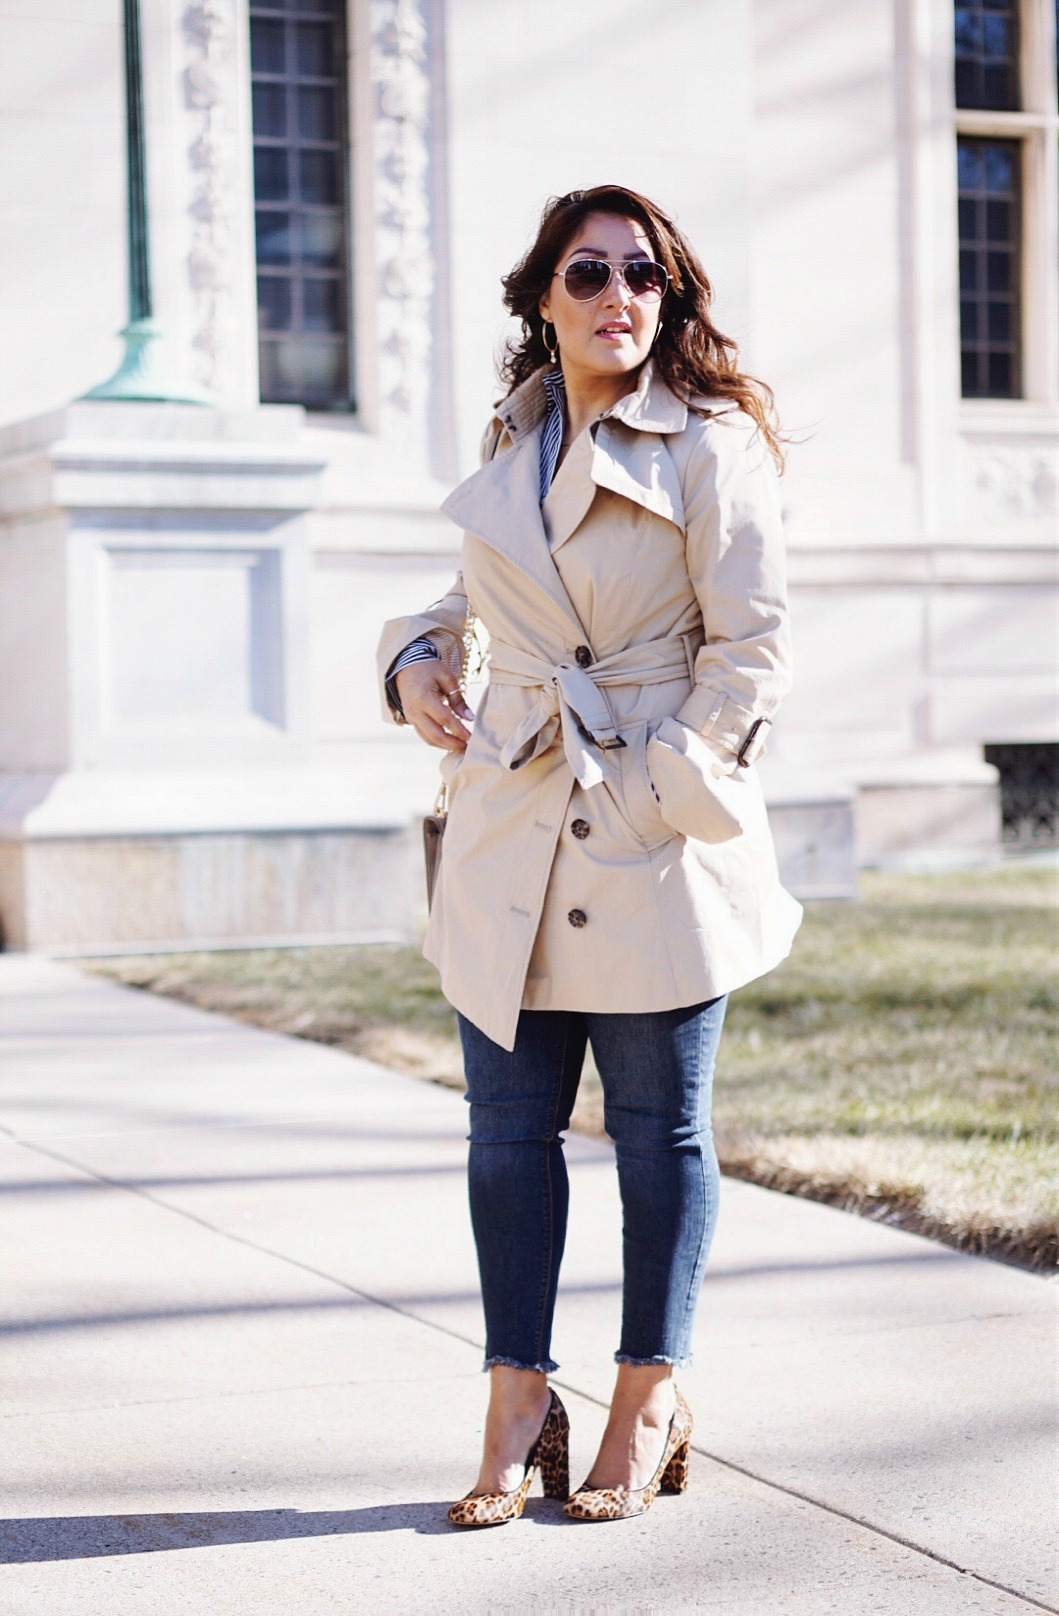 A casual way to style the trench coat.